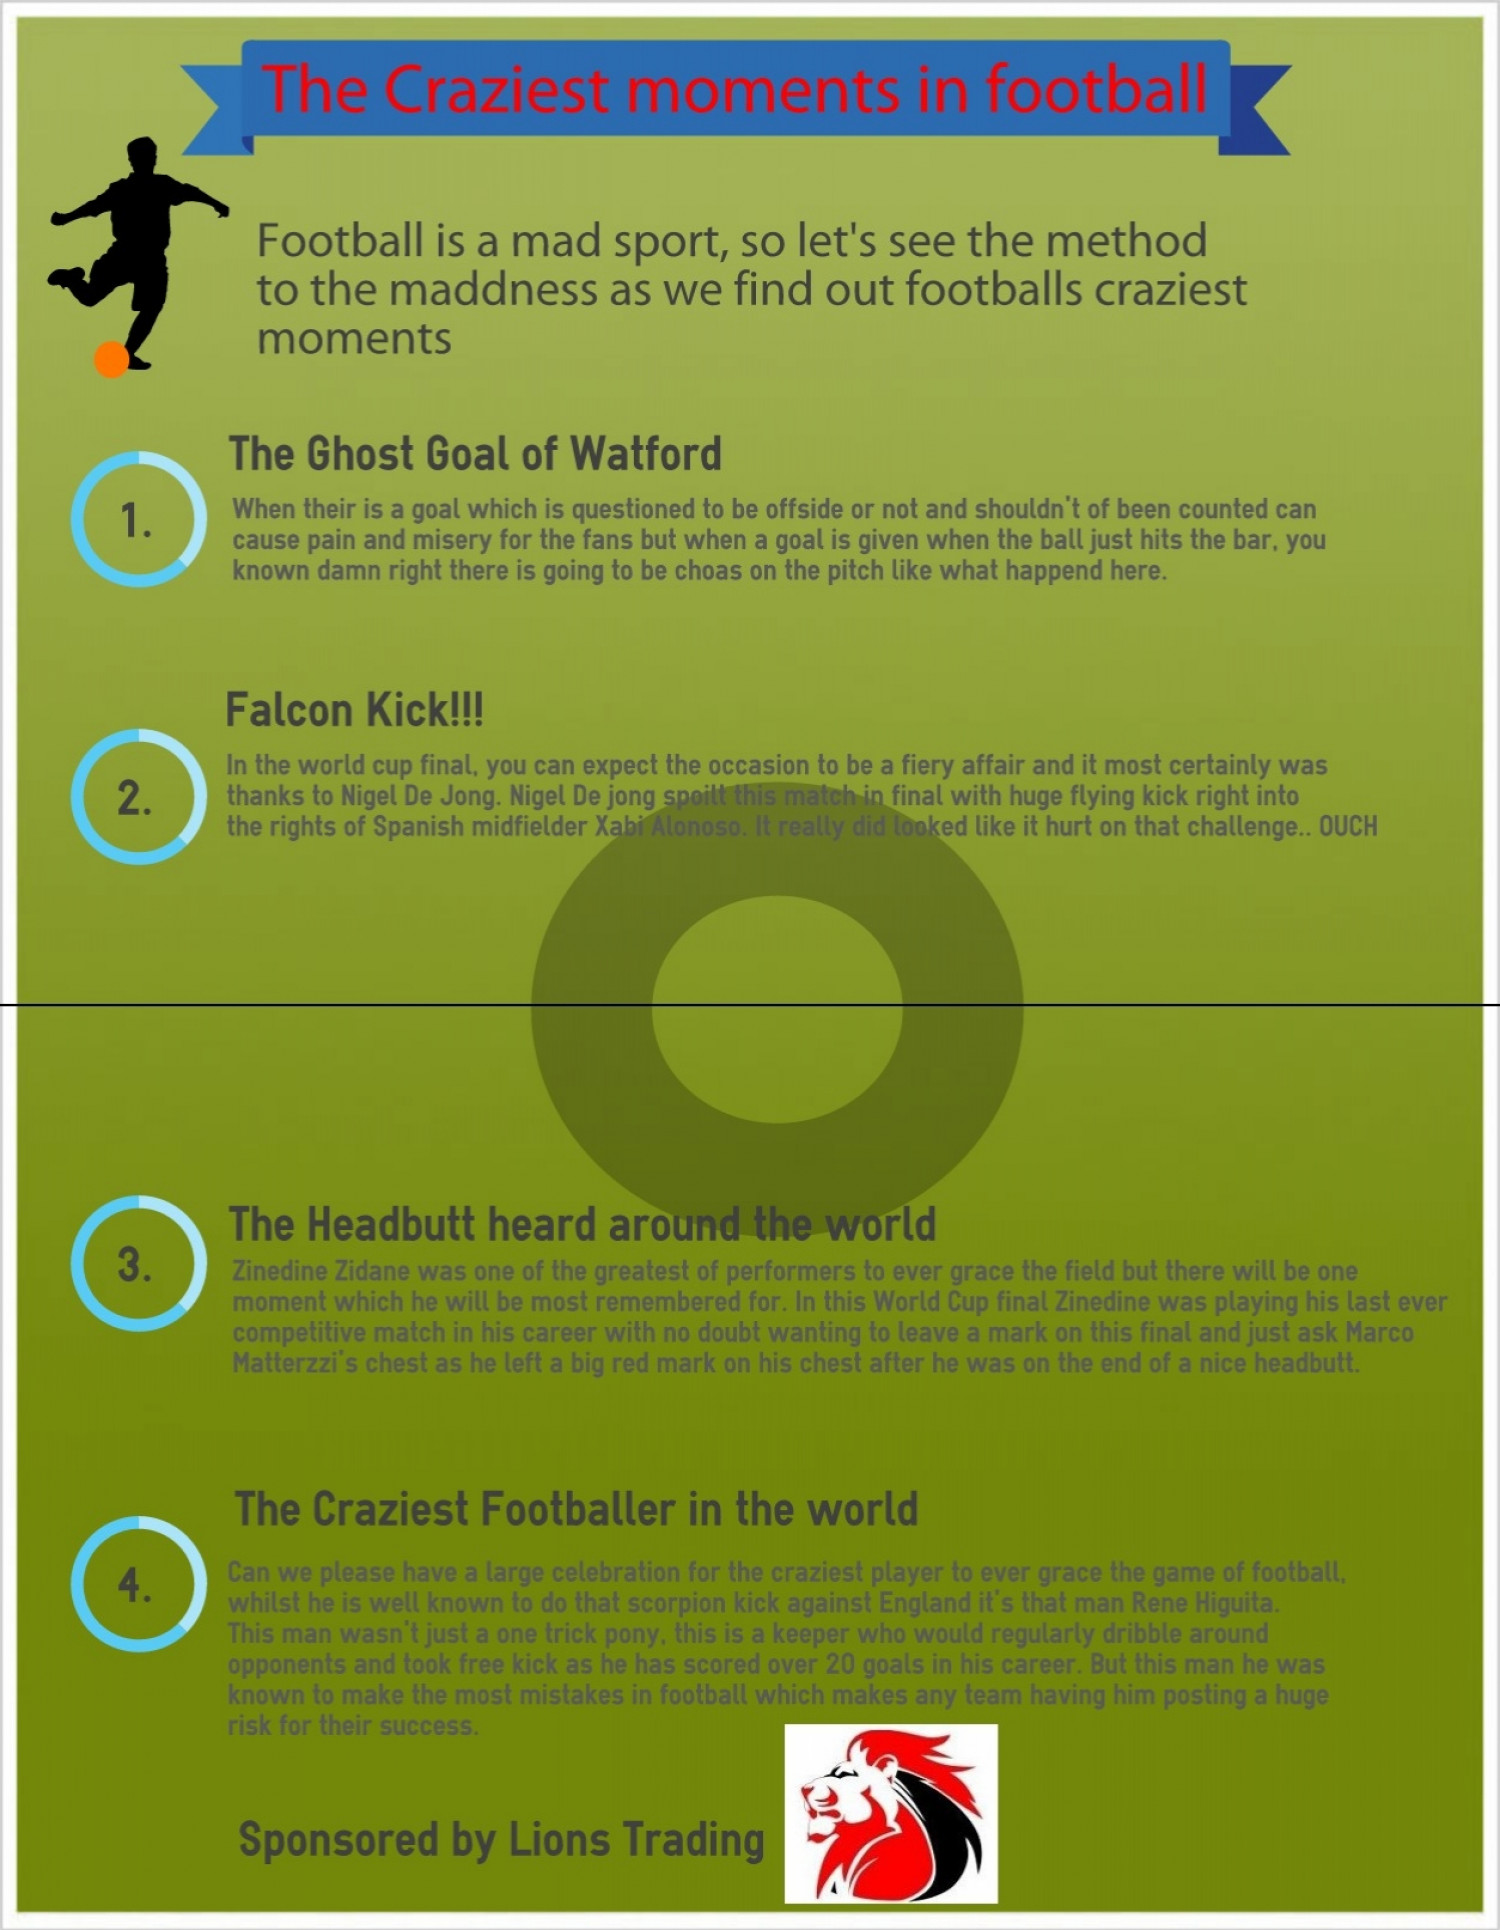 The Craziest Moments in football Infographic